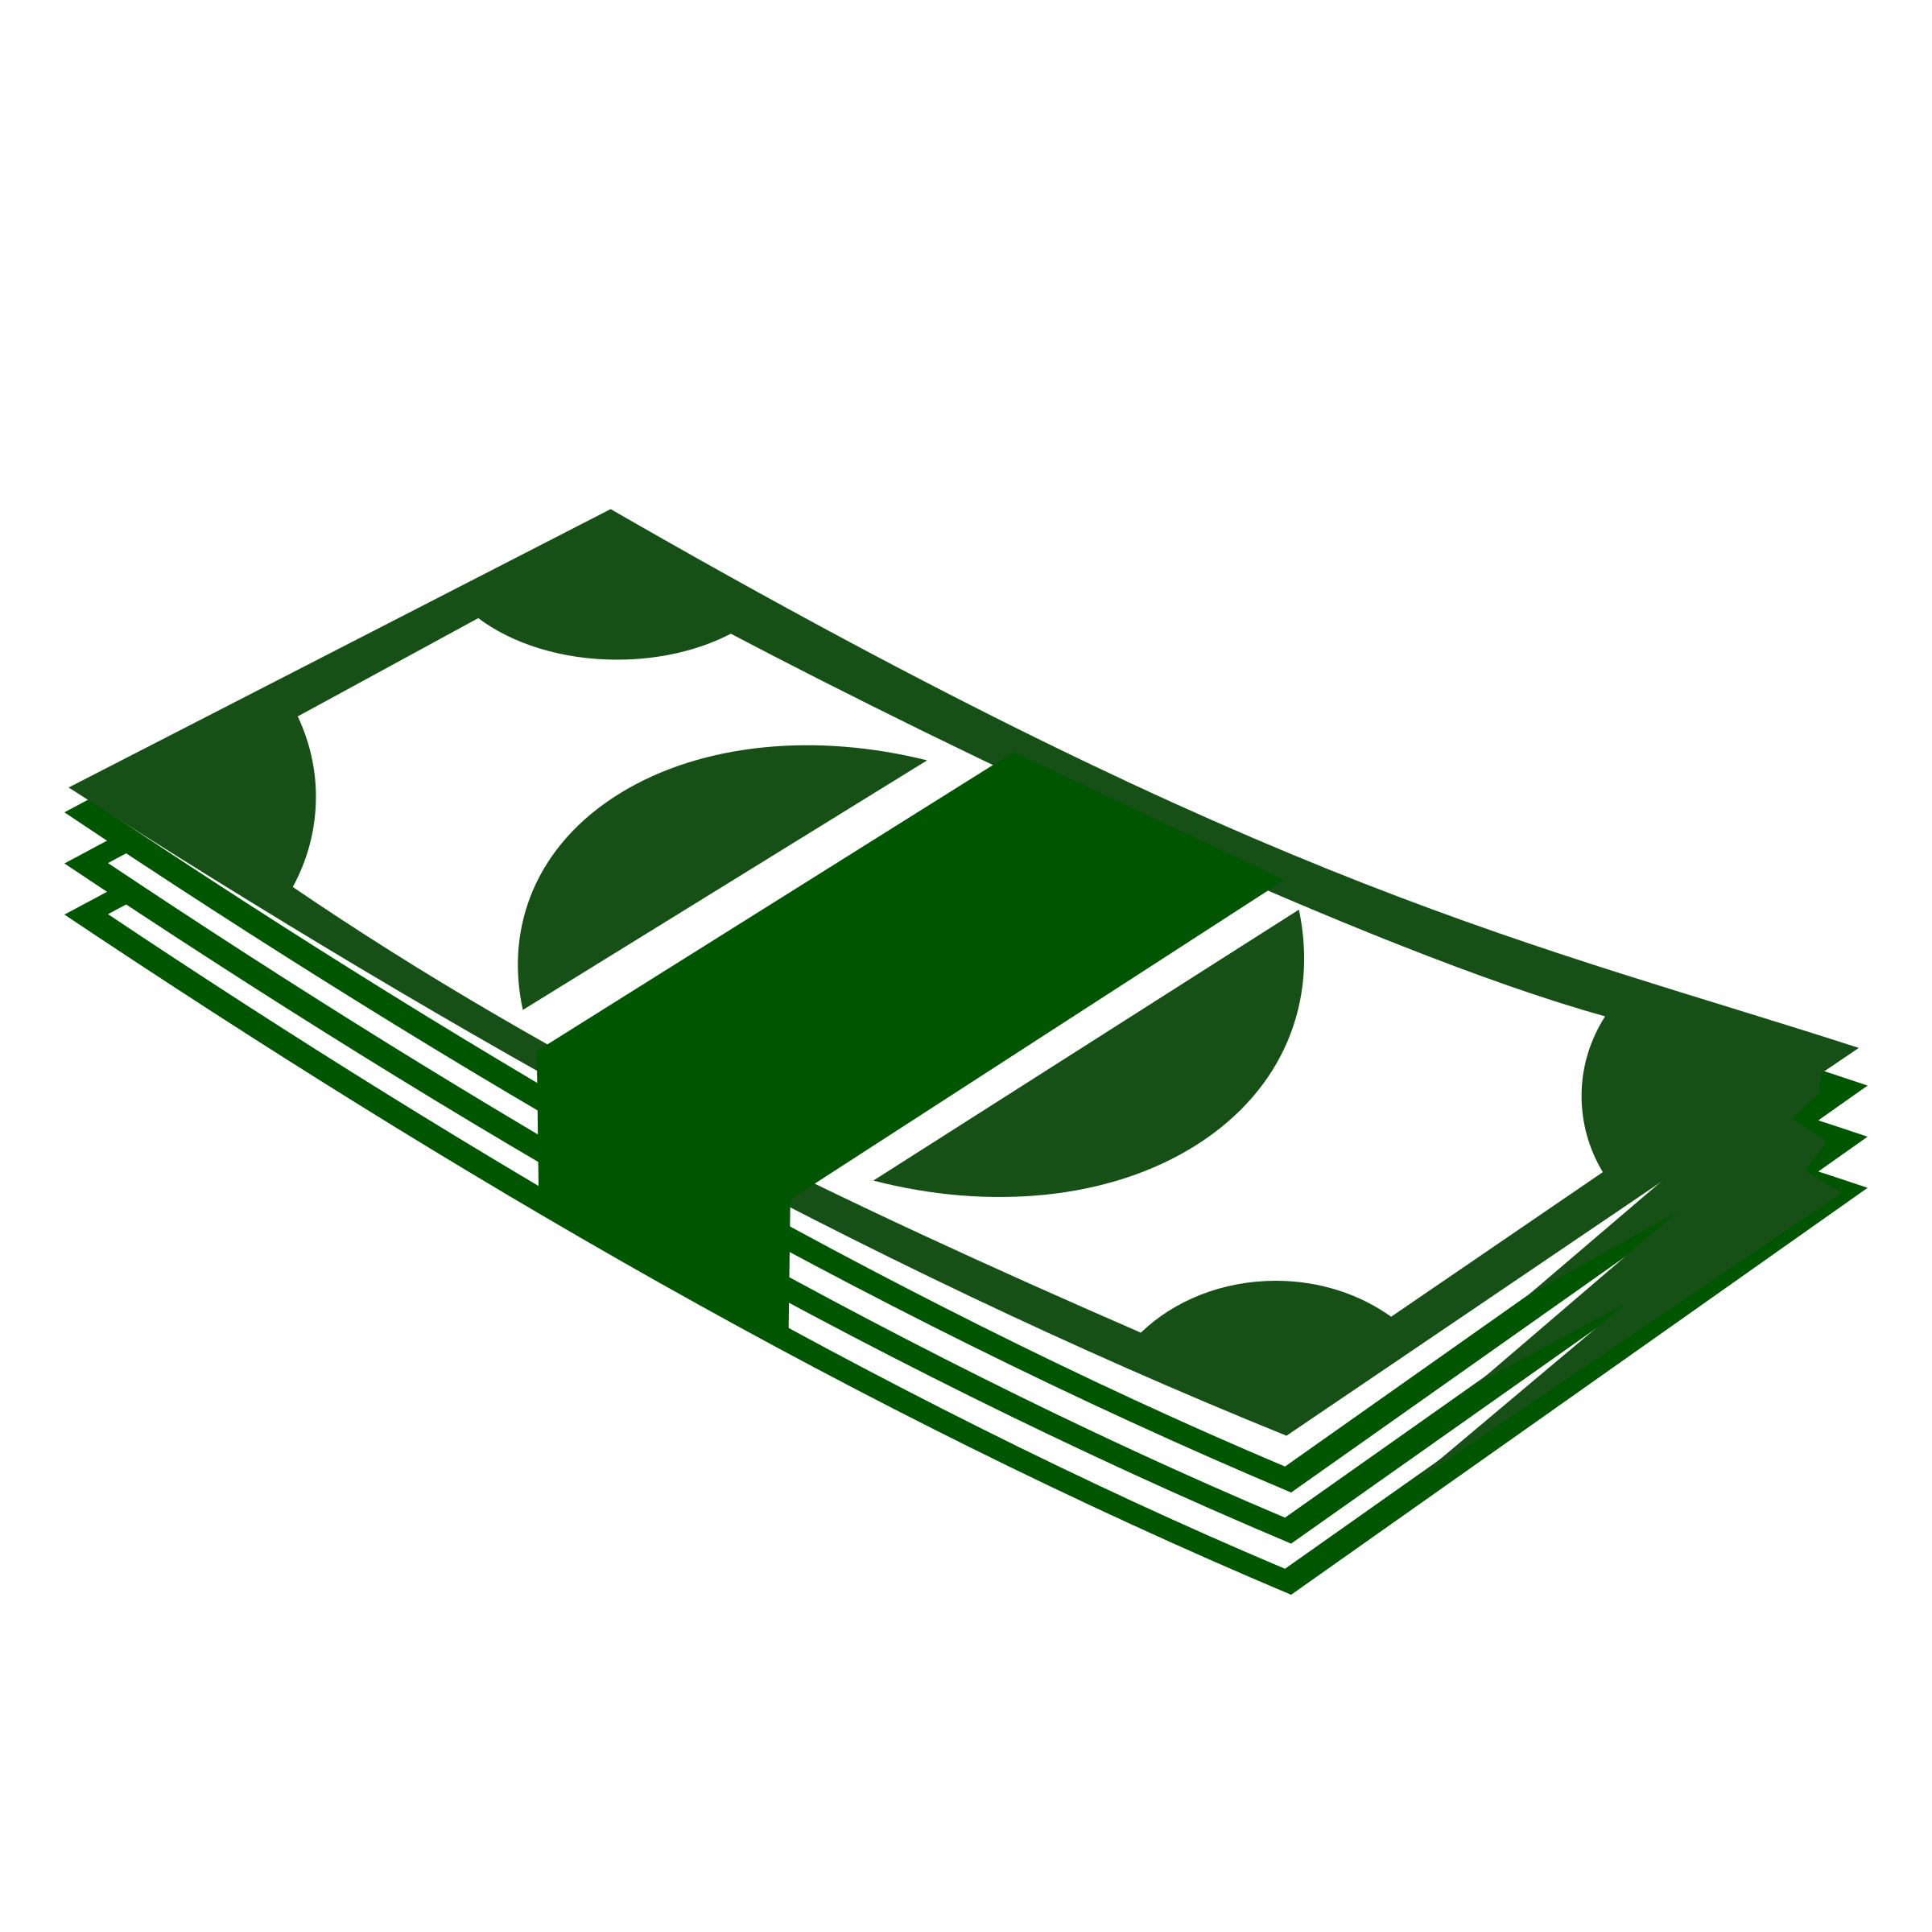 Cash clipart png. Collection of high